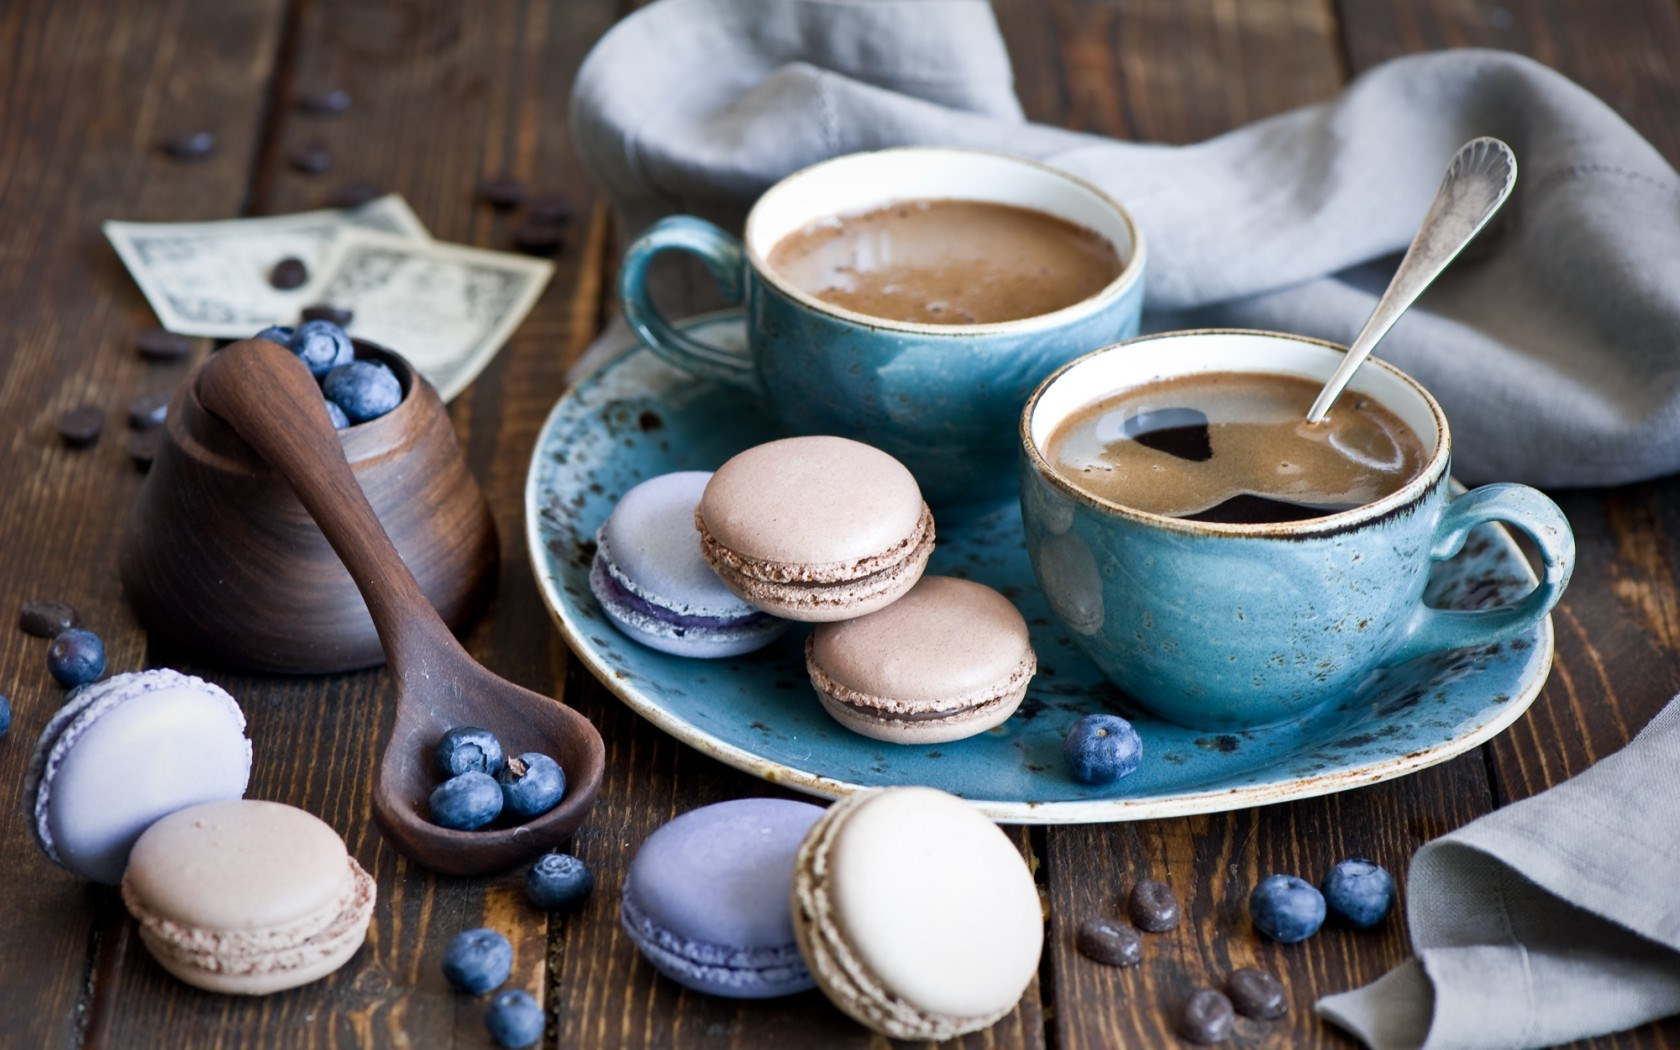 Cookies Macaroon Coffee Dessert Blueberries